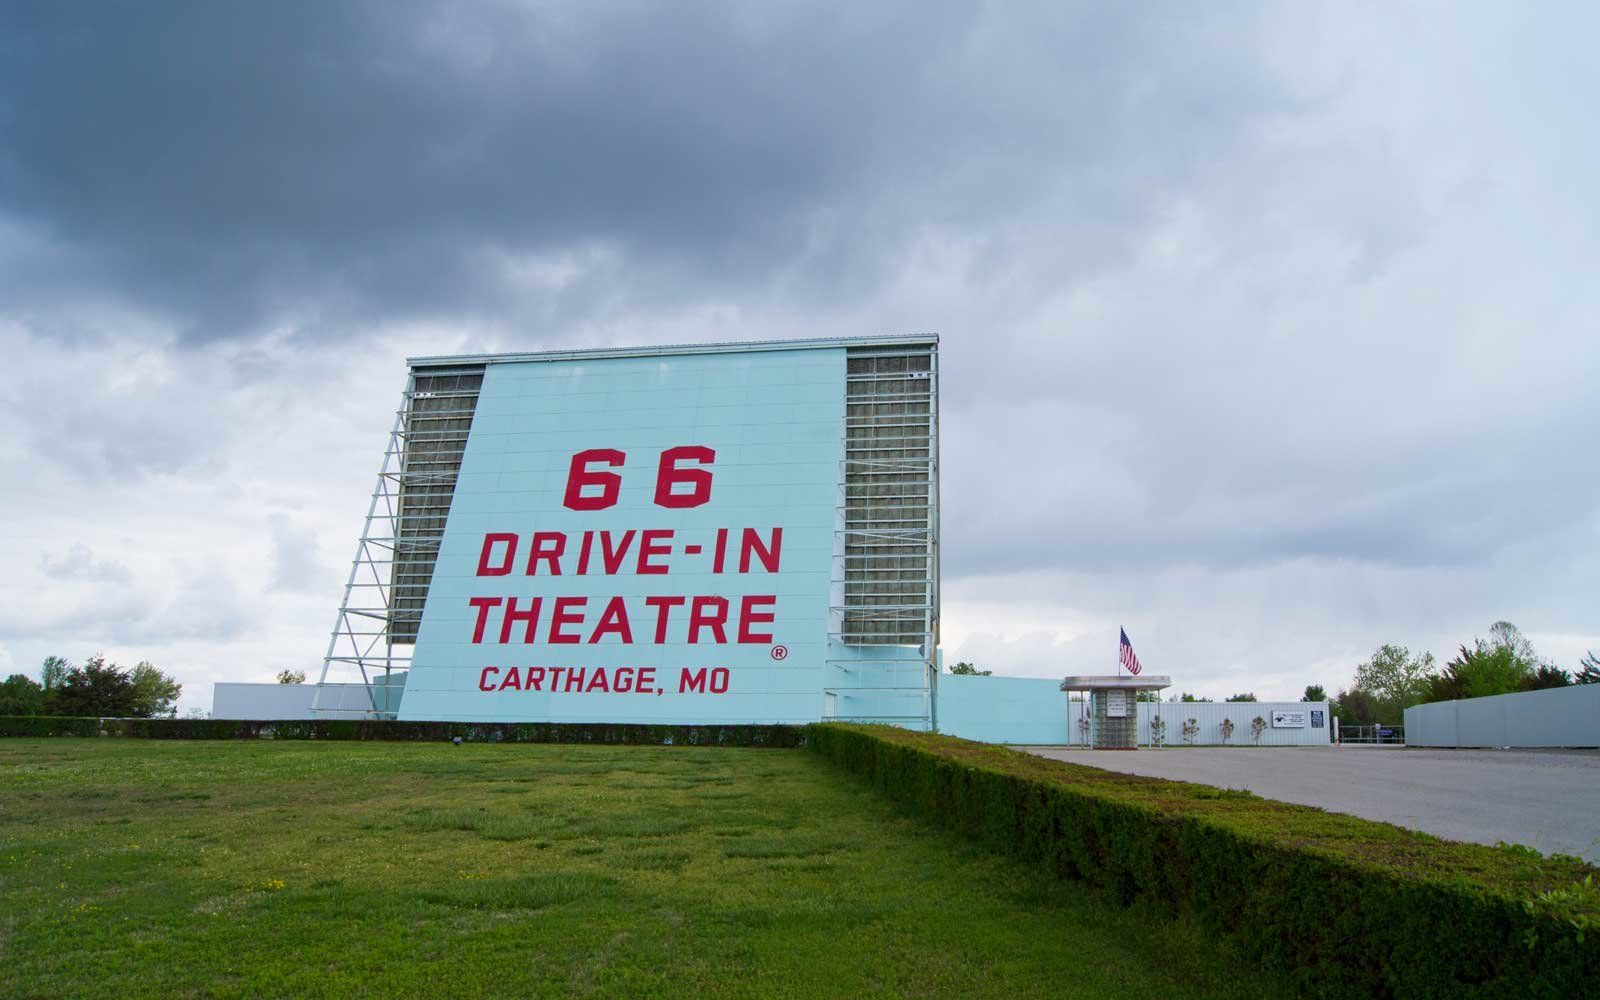 The Best Drivein Theaters in the U.S. (With images